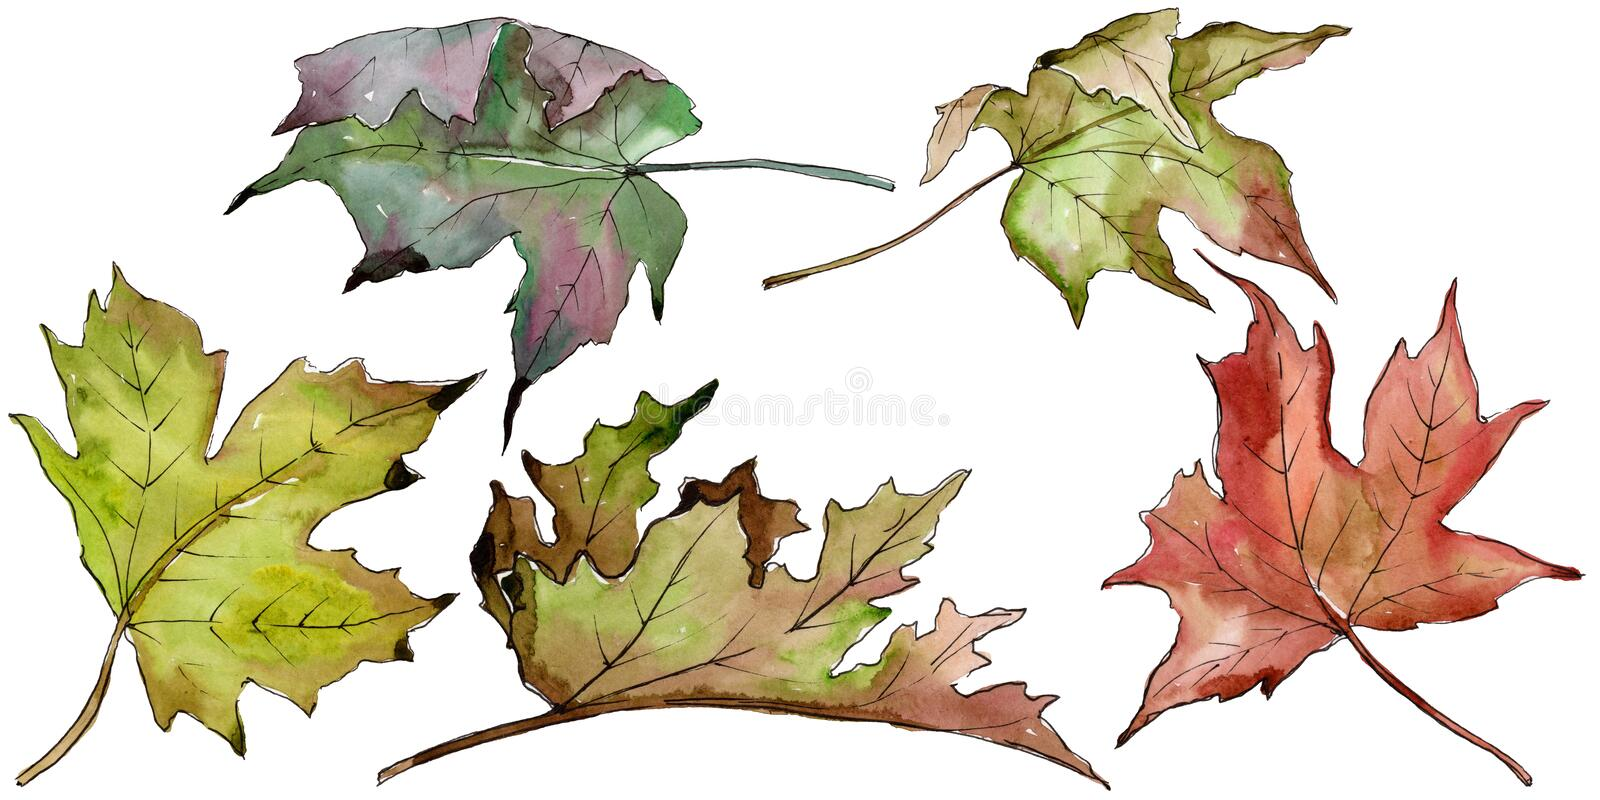 Watercolor green and red maple leaves. Leaf plant botanical garden floral foliage. Isolated illustration element. royalty free illustration